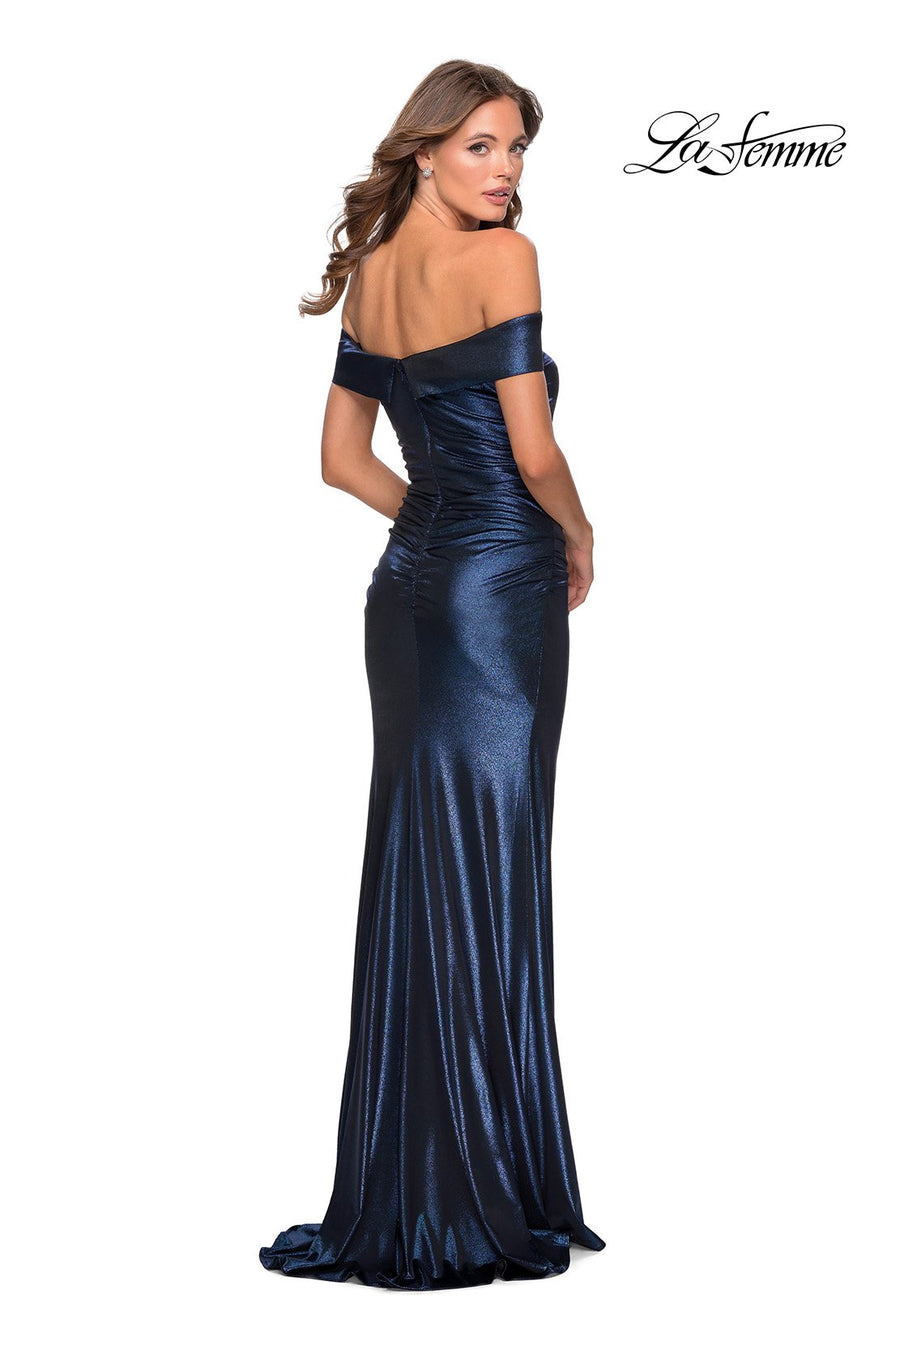 La Femme 28740 prom dress images.  La Femme 28740 is available in these colors: Navy, Peach.